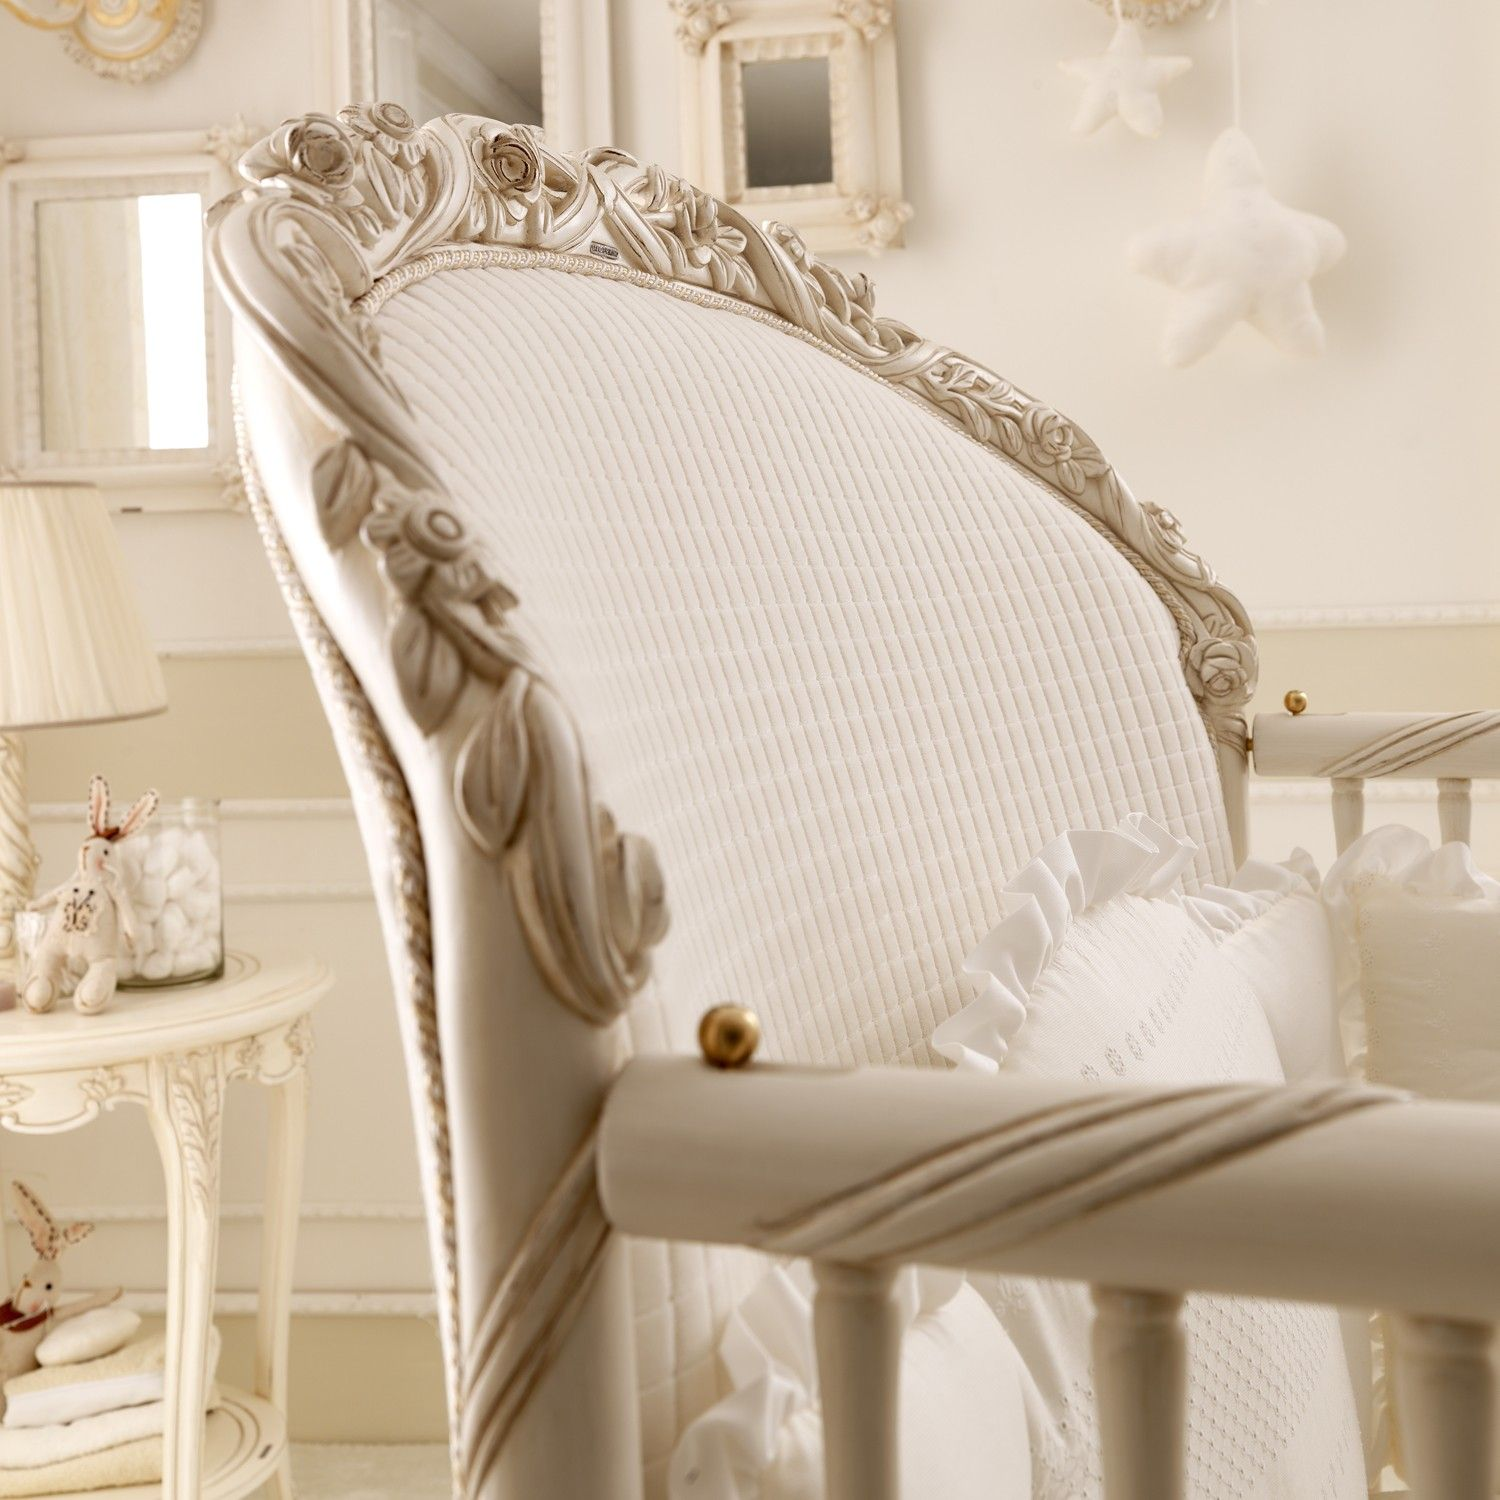 Notte Fatata | Crib | Newborn Bedroom | Furniture for baby\'s room ...